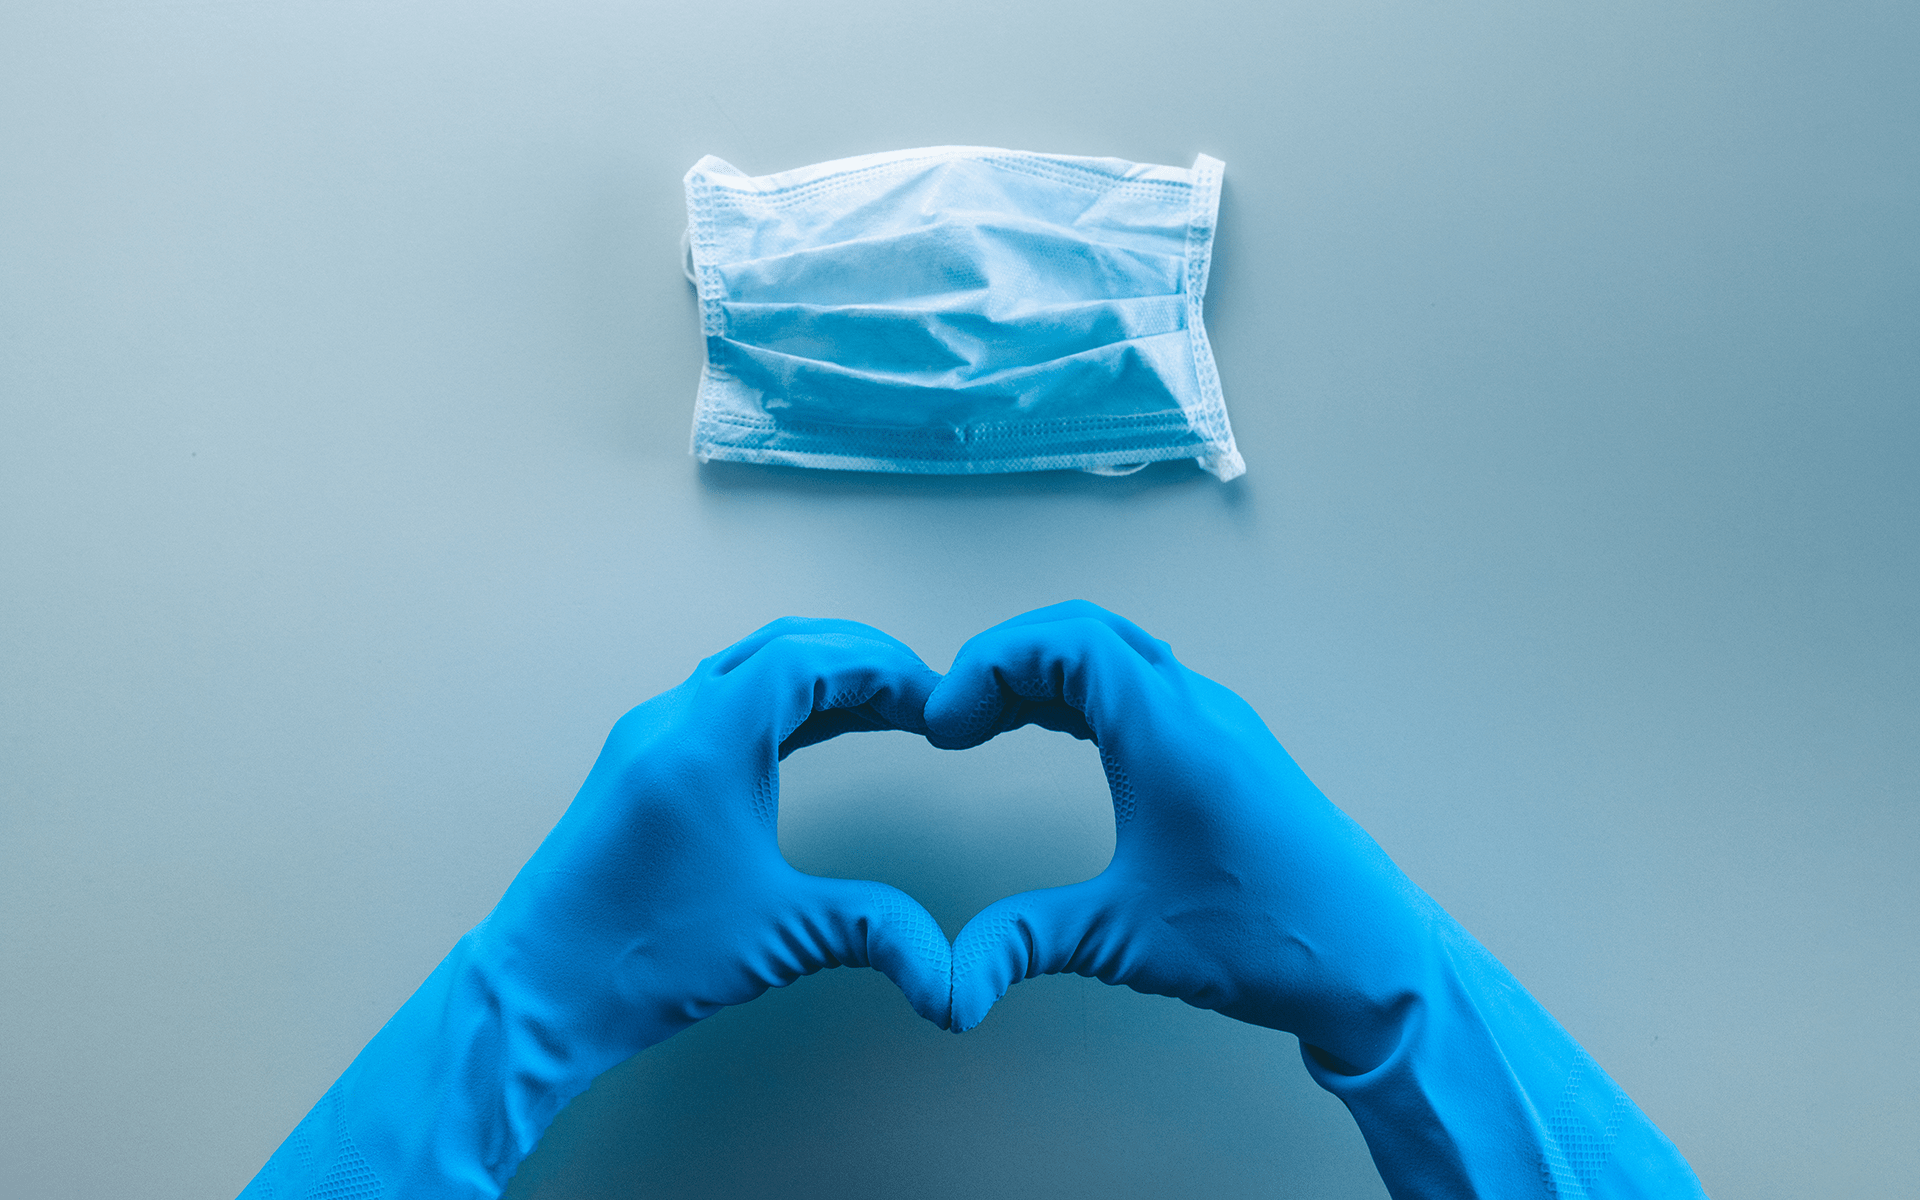 Hands in blue surgical gloves making a heart shape with their fingers. There's a blue background with a blue face mask above the hands.